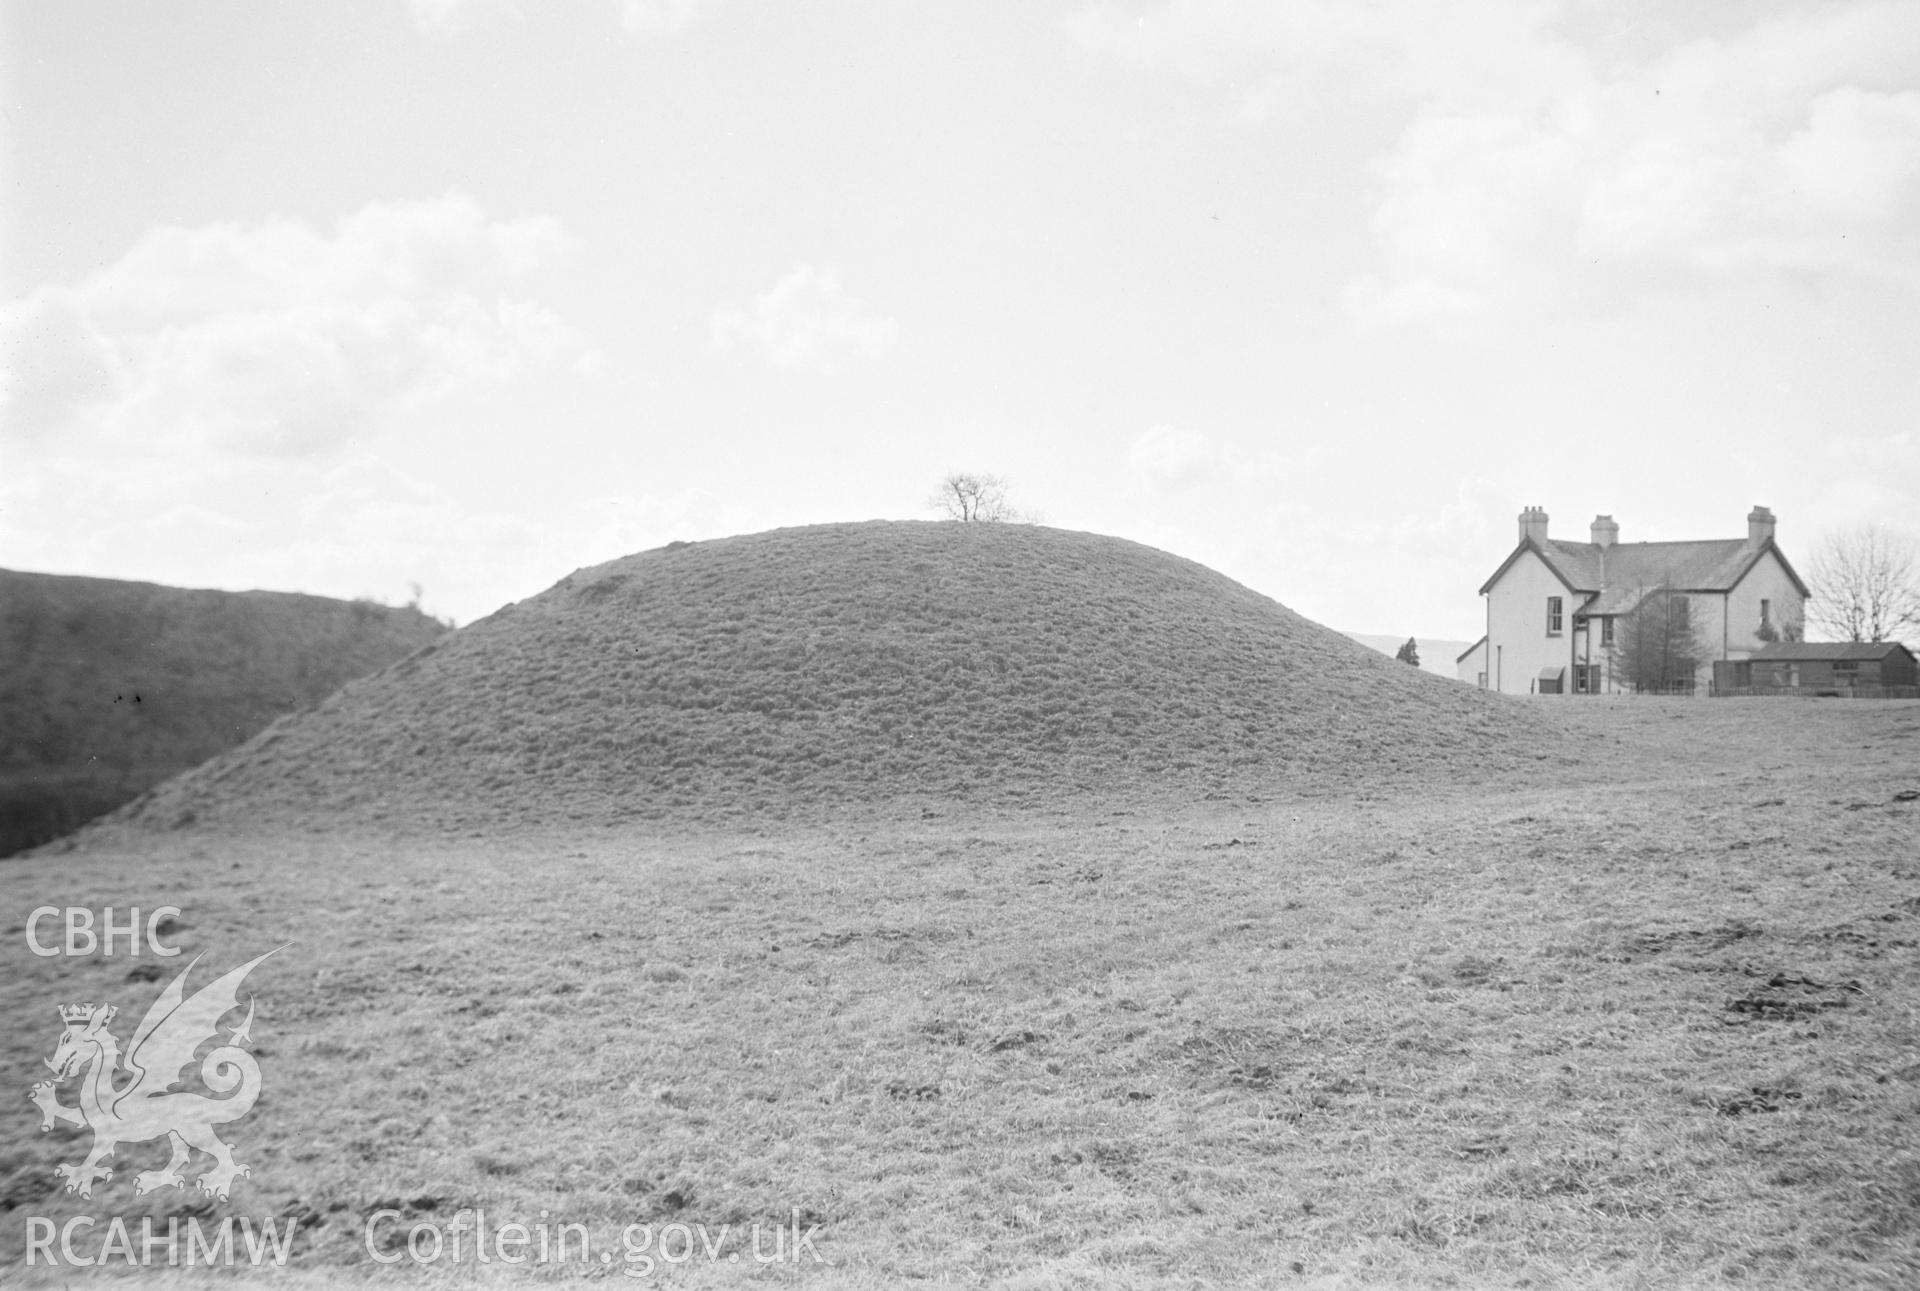 Digital copy of a nitrate negative showing Cae Burdydd mound, Vaynor. From the Cadw Monuments in Care Collection.